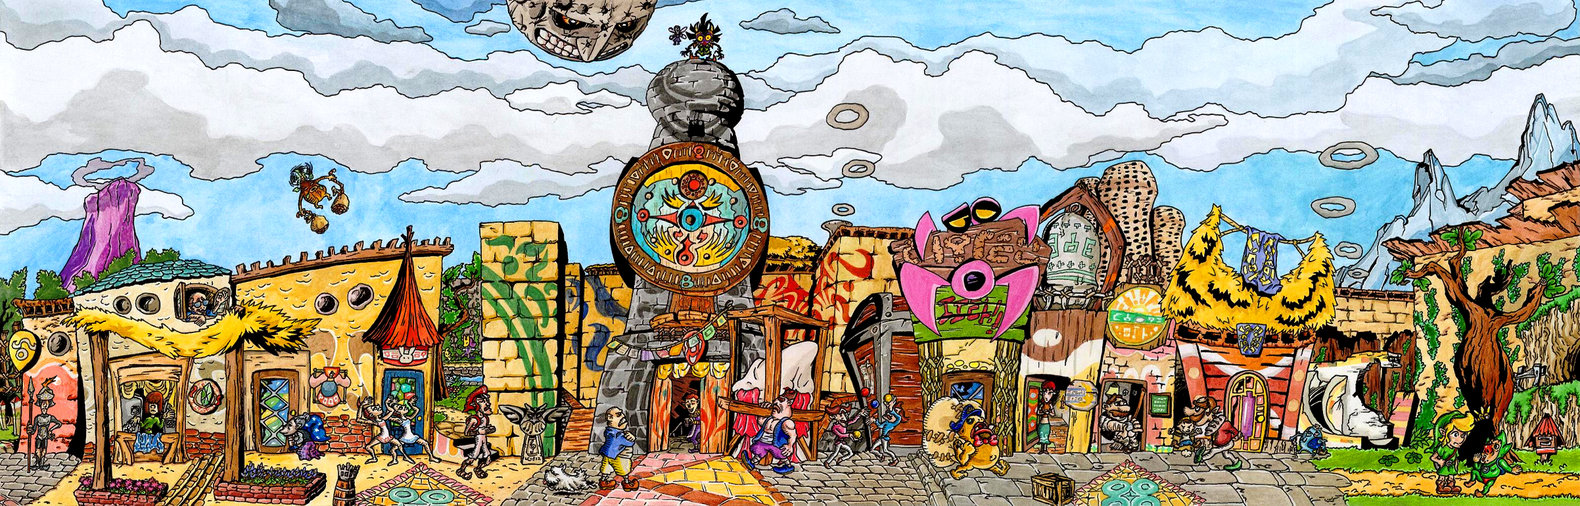 clock_town___tingle__s_rosy_rupeeland_style_by_skull_the_kid-d5n2iew